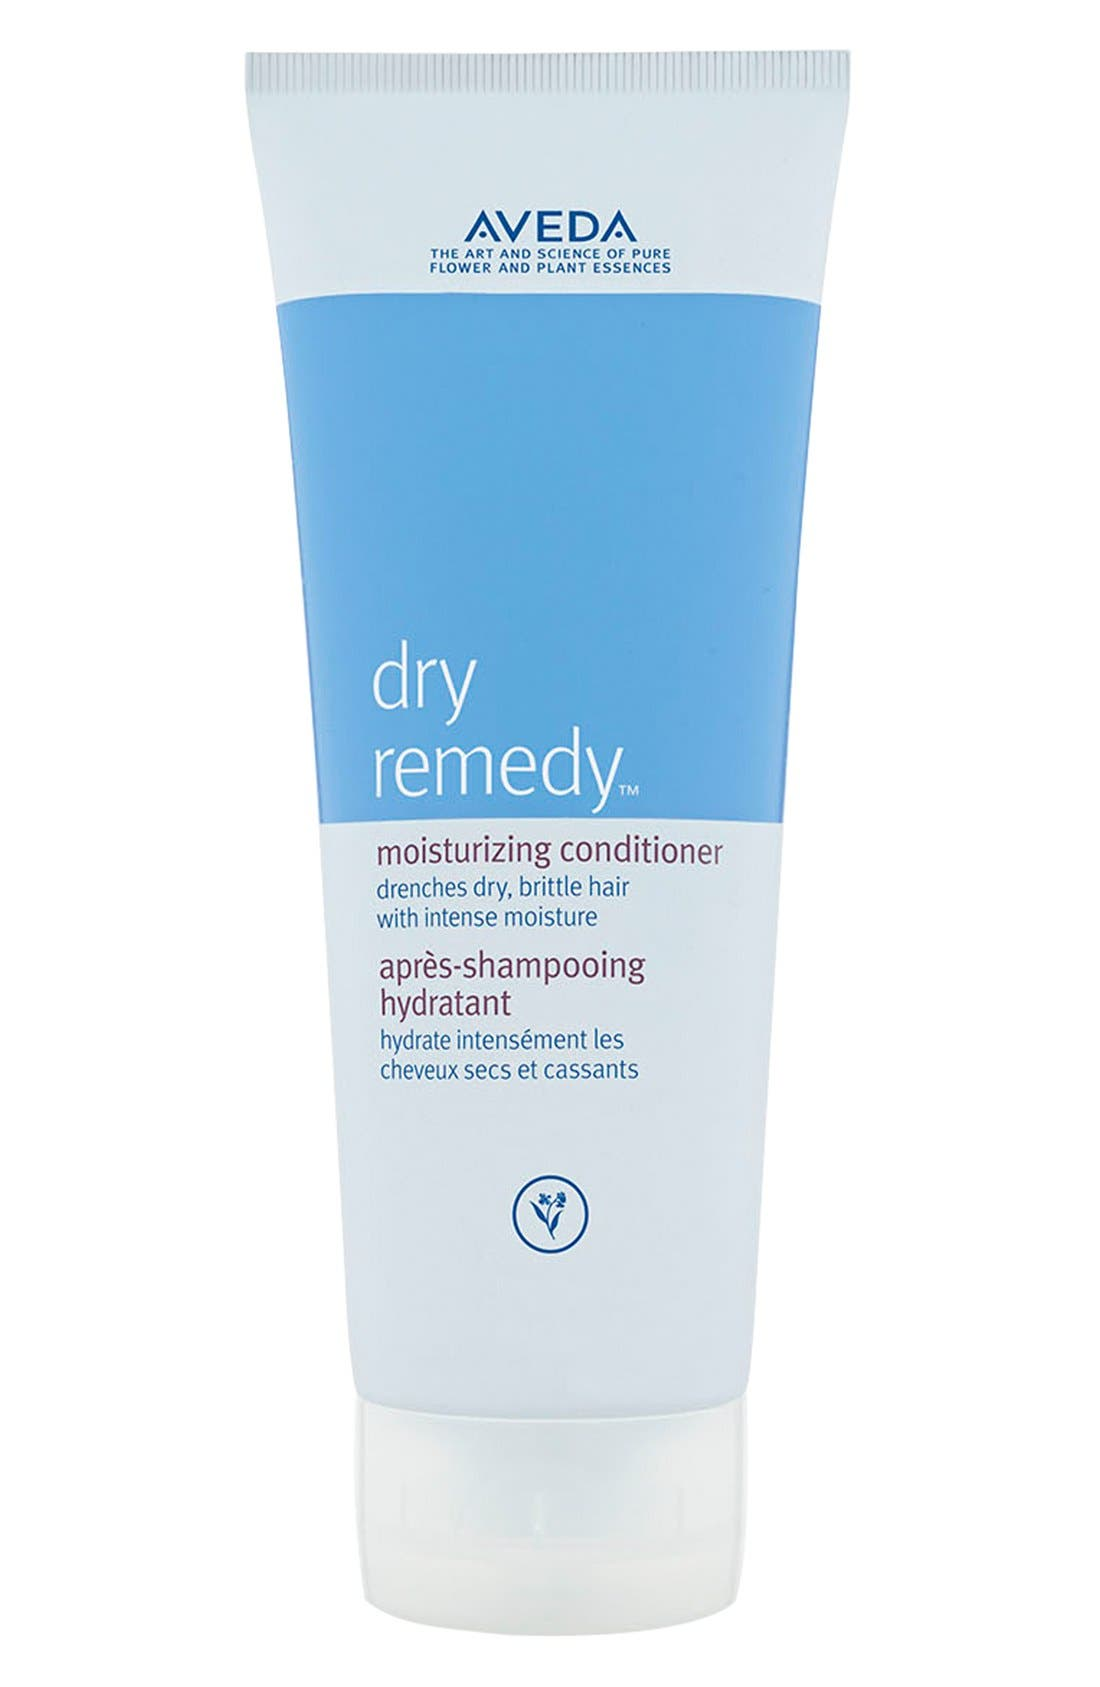 Aveda 'dry remedy™' Moisturizing Conditioner